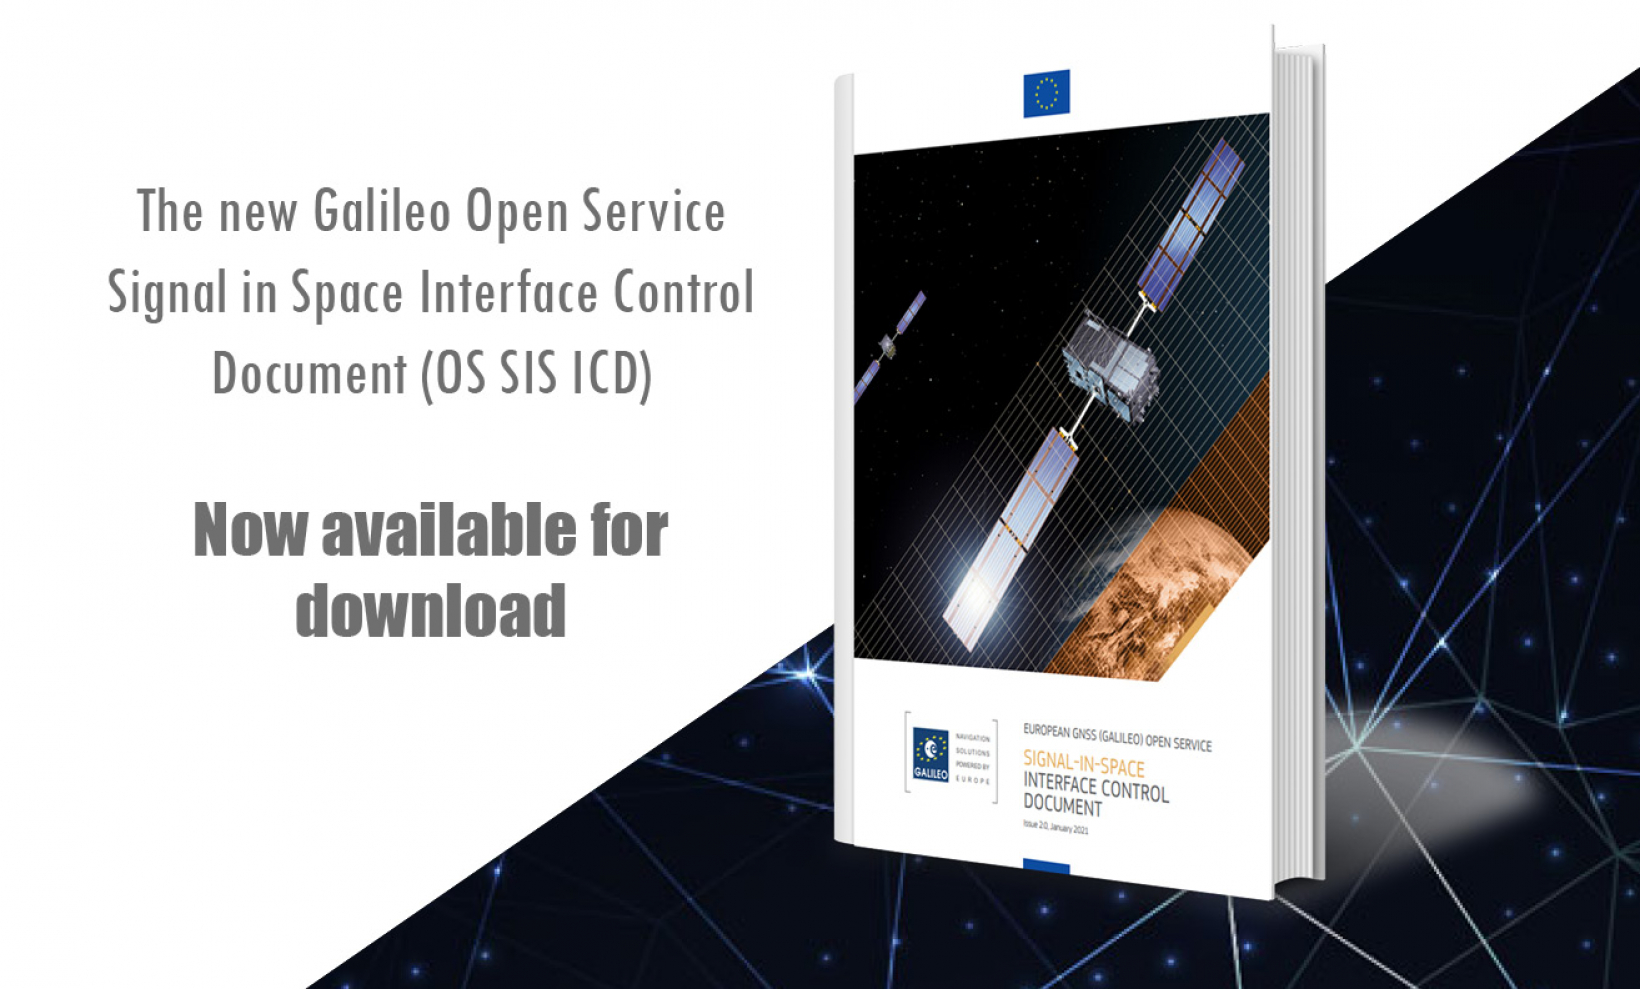 The updated OS SIS ICD is available for download on the GSC website.